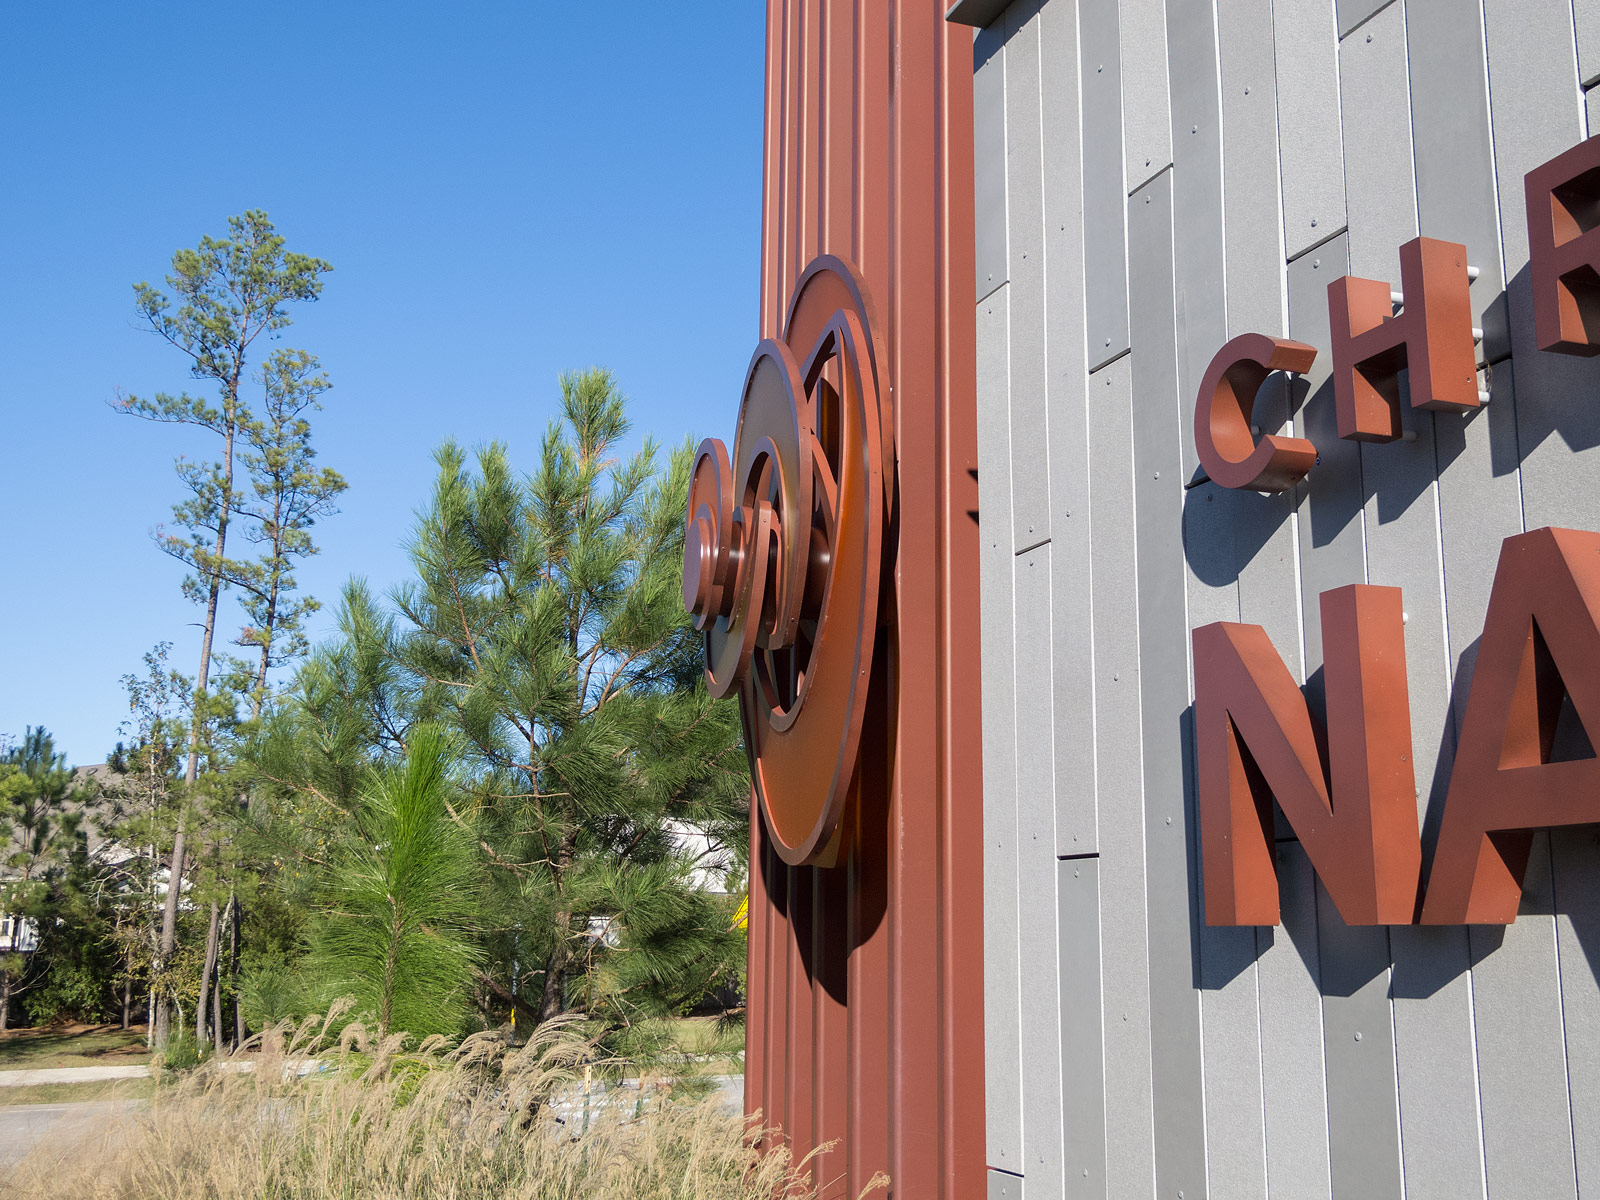 Close up view of halo-illuminated channel letters and fabricated rose sculpture with edge-lit 3Form petals.